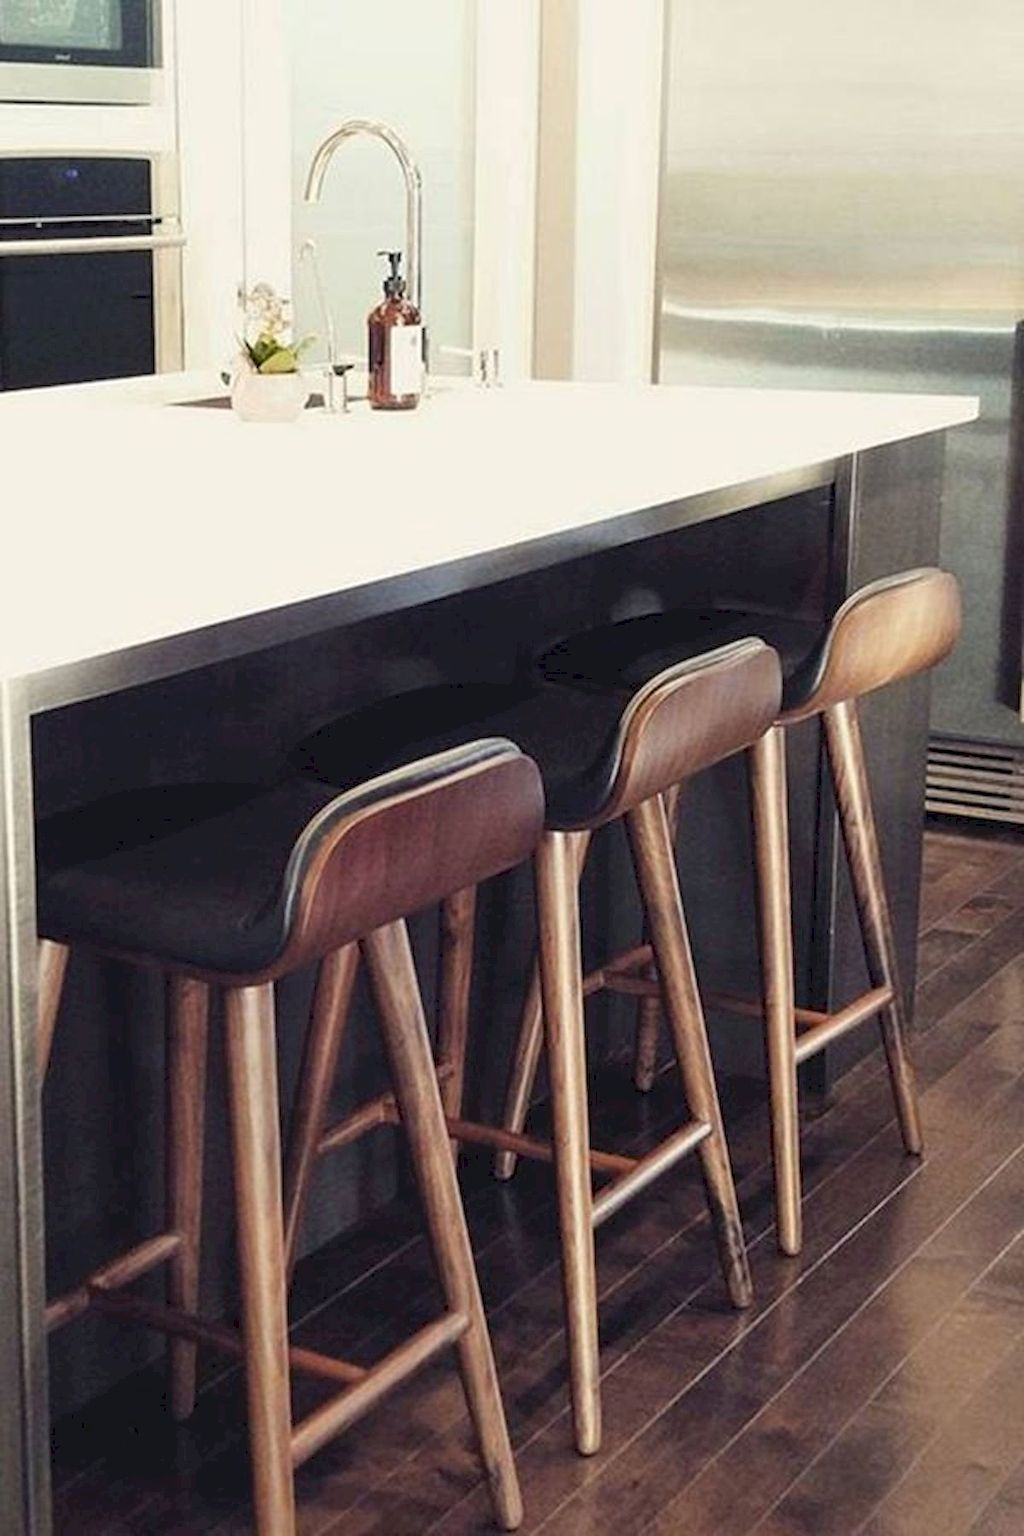 How To Choose The Right Bar Stools Tabouret De Bar Chaise Haute